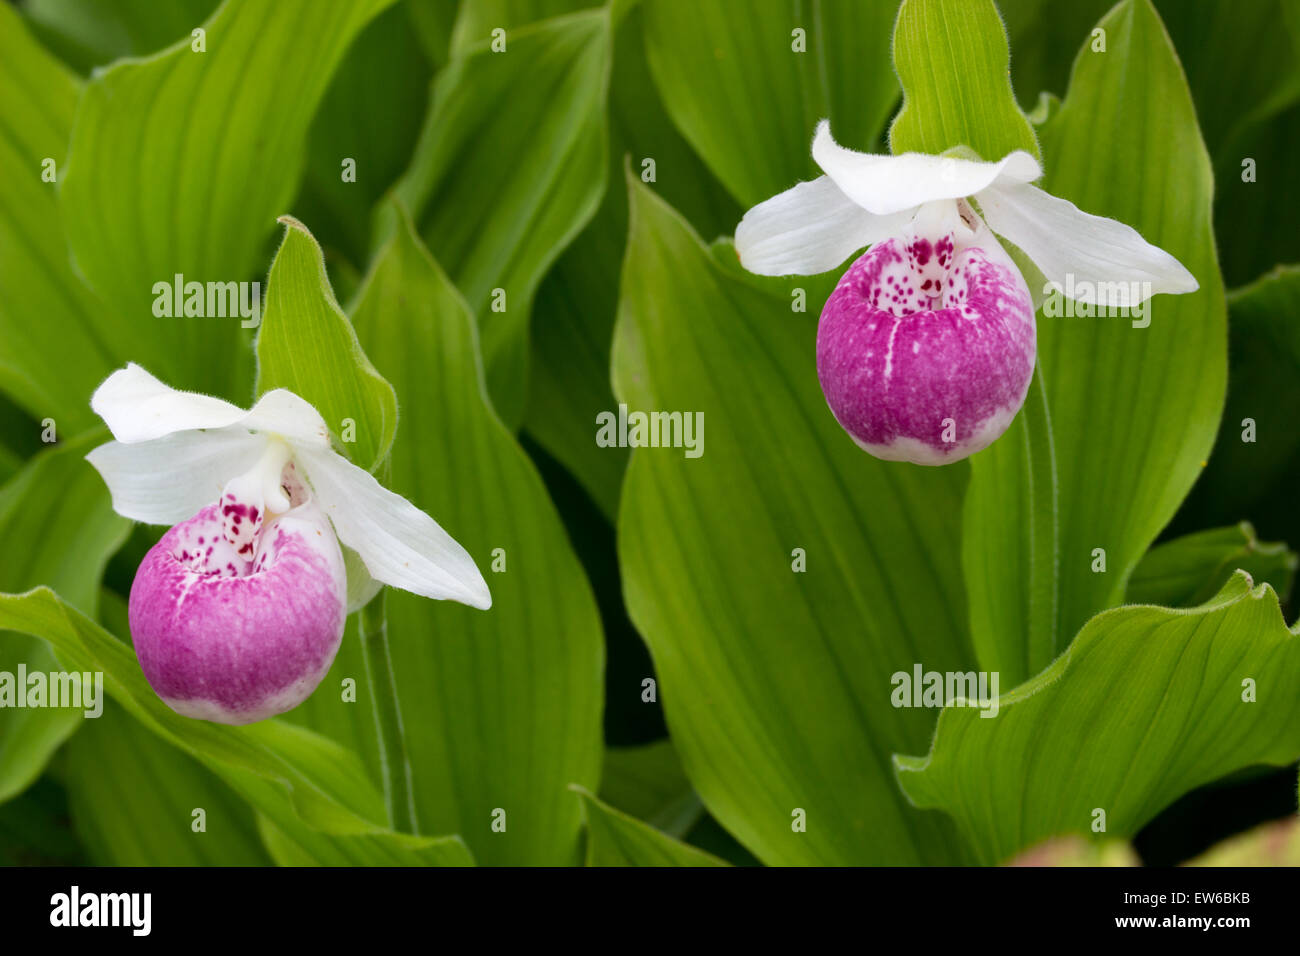 Pouched flowers of the terrestrial ladies slipper orchid, Cypripedium 'Ulla Silkens' - Stock Image